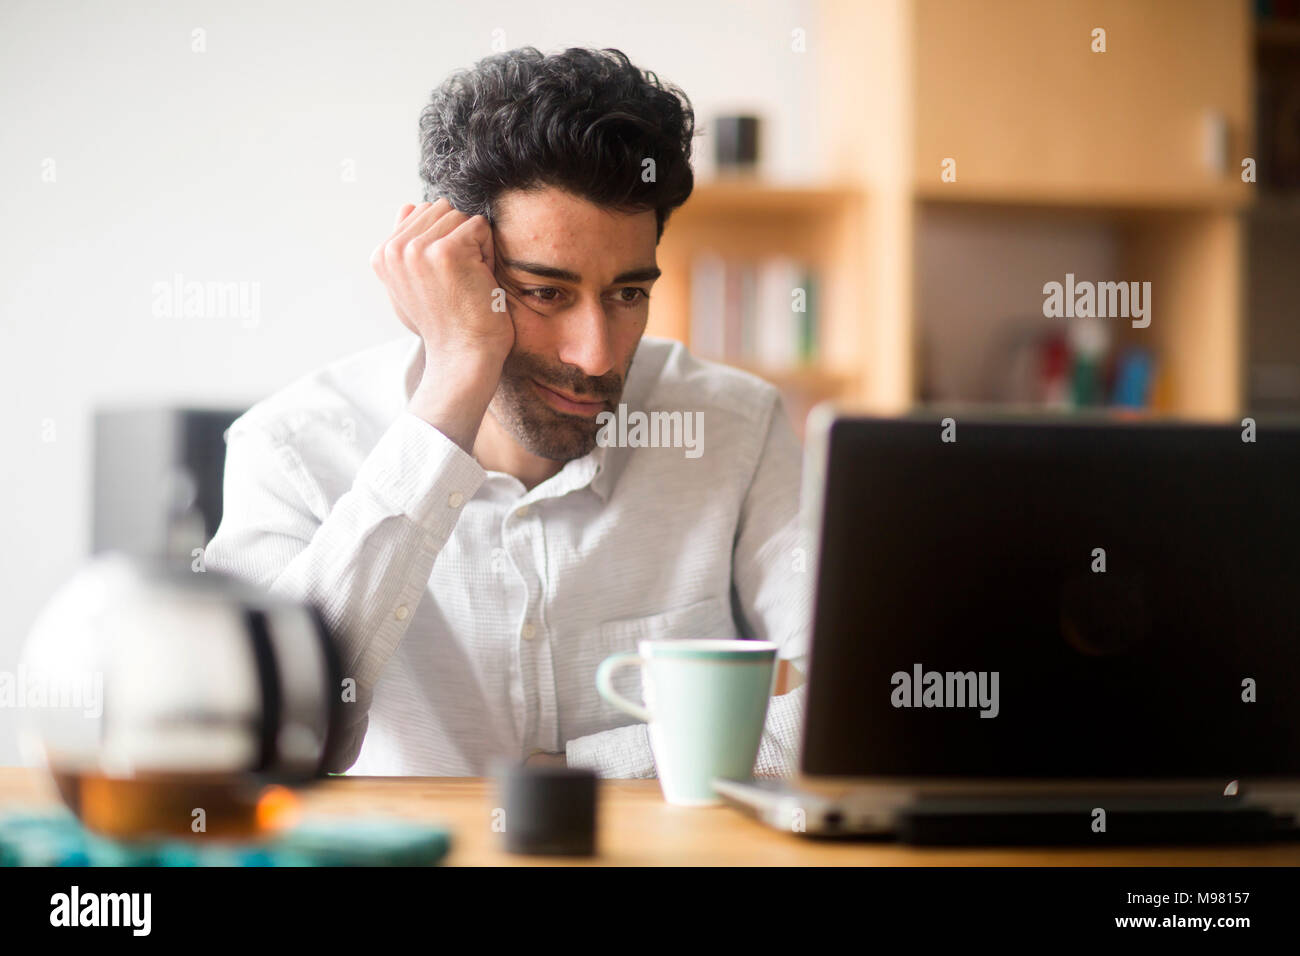 Portrait of businessman looking at laptop Photo Stock